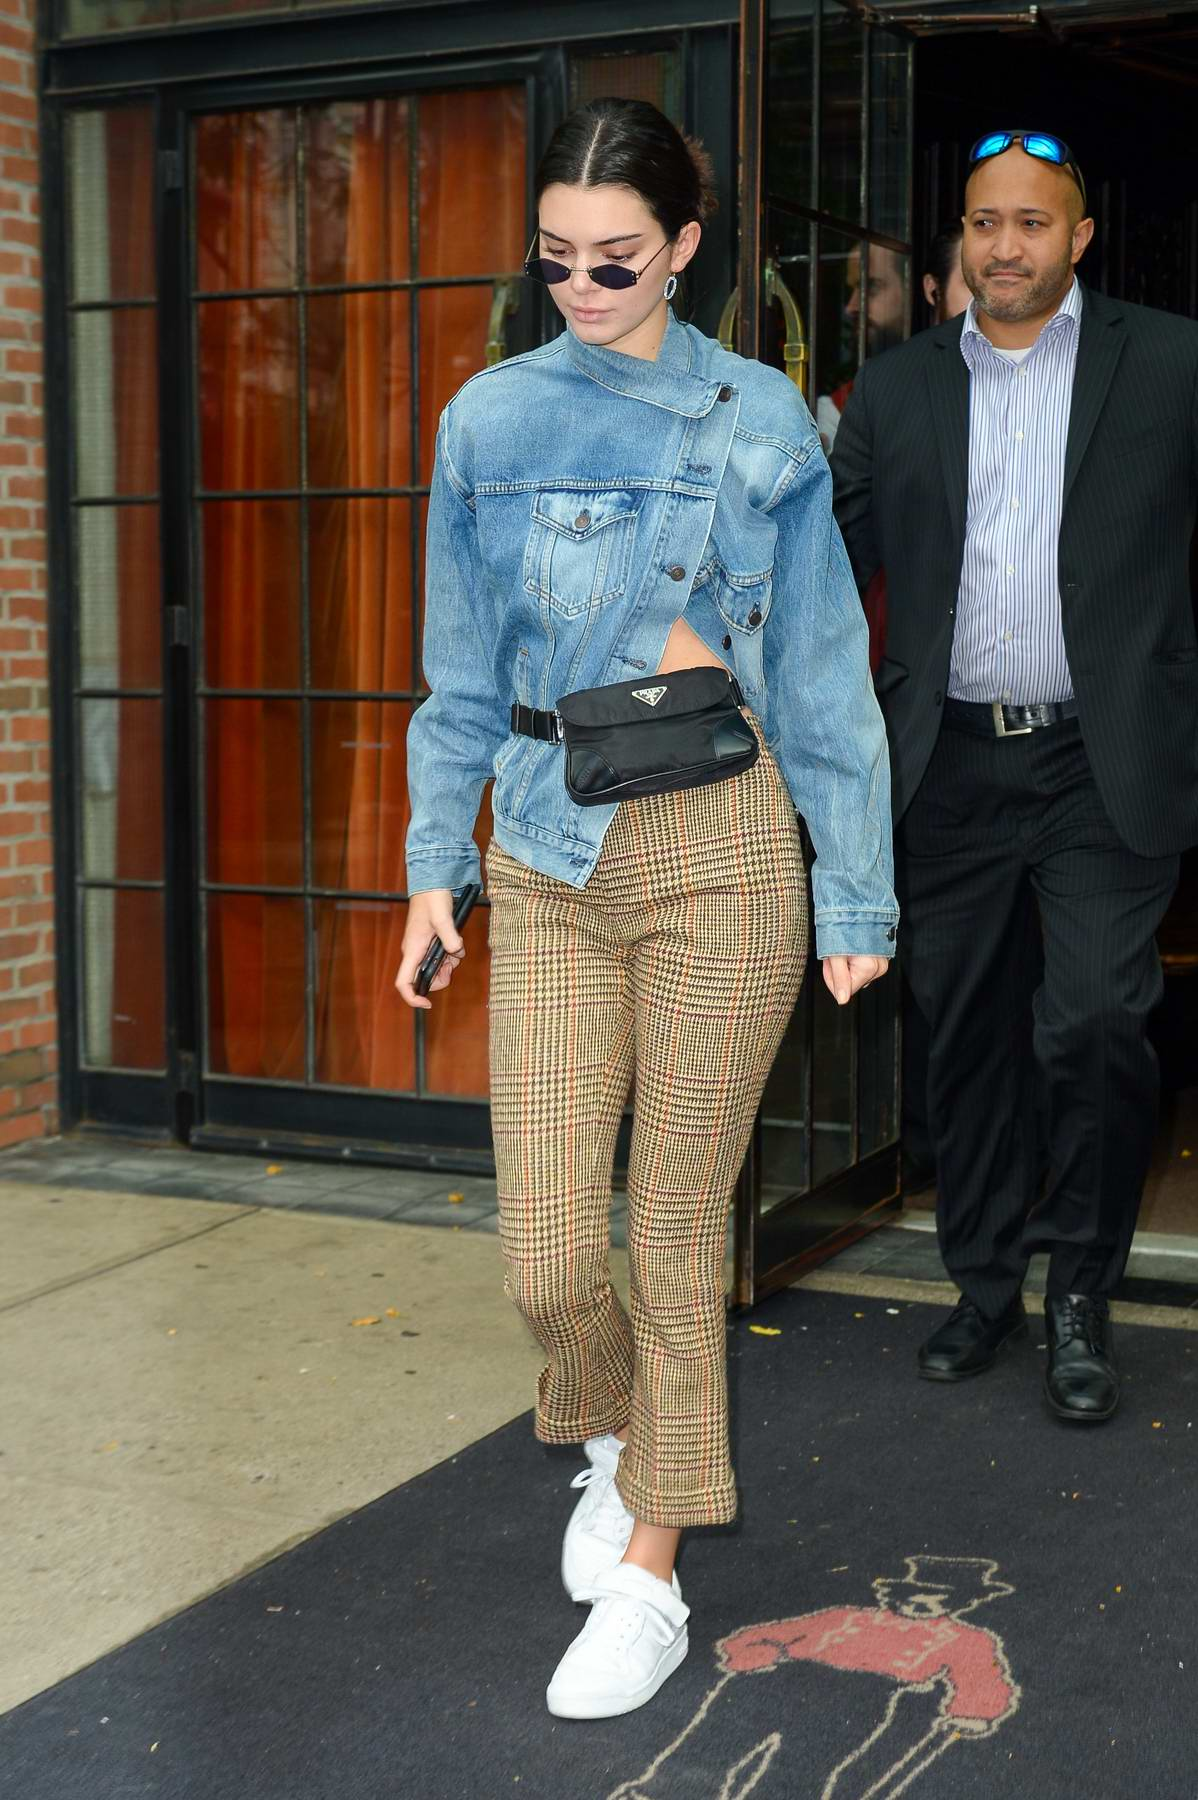 Kendall Jenner wears tweed and denim in Downtown, Manhattan, New York